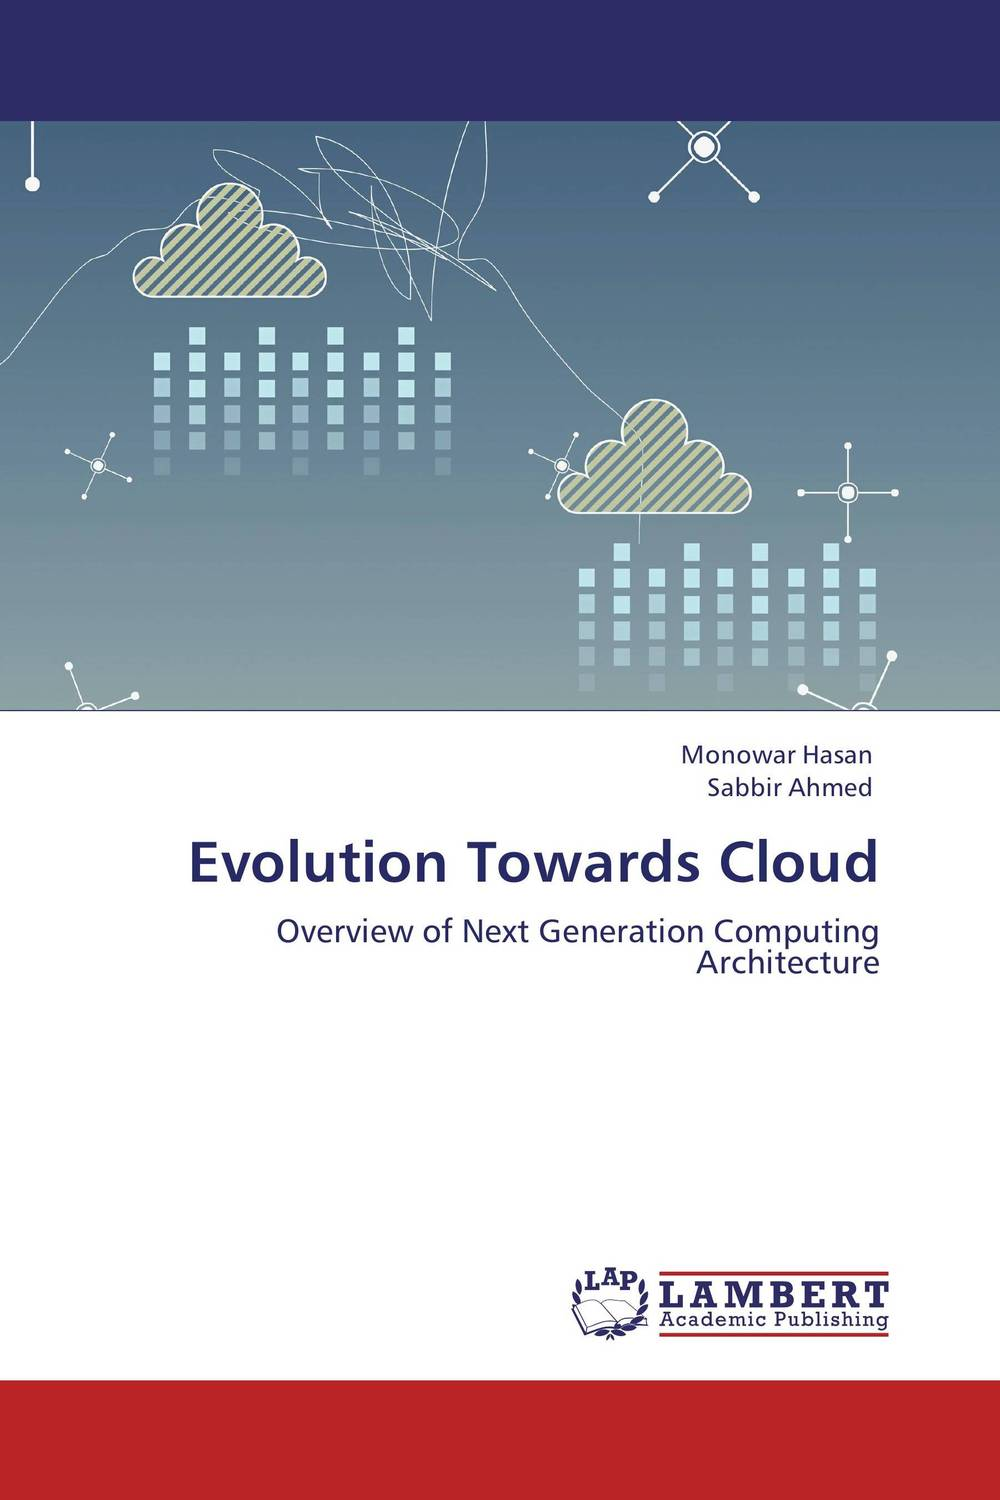 Evolution Towards Cloud evolution towards cloud